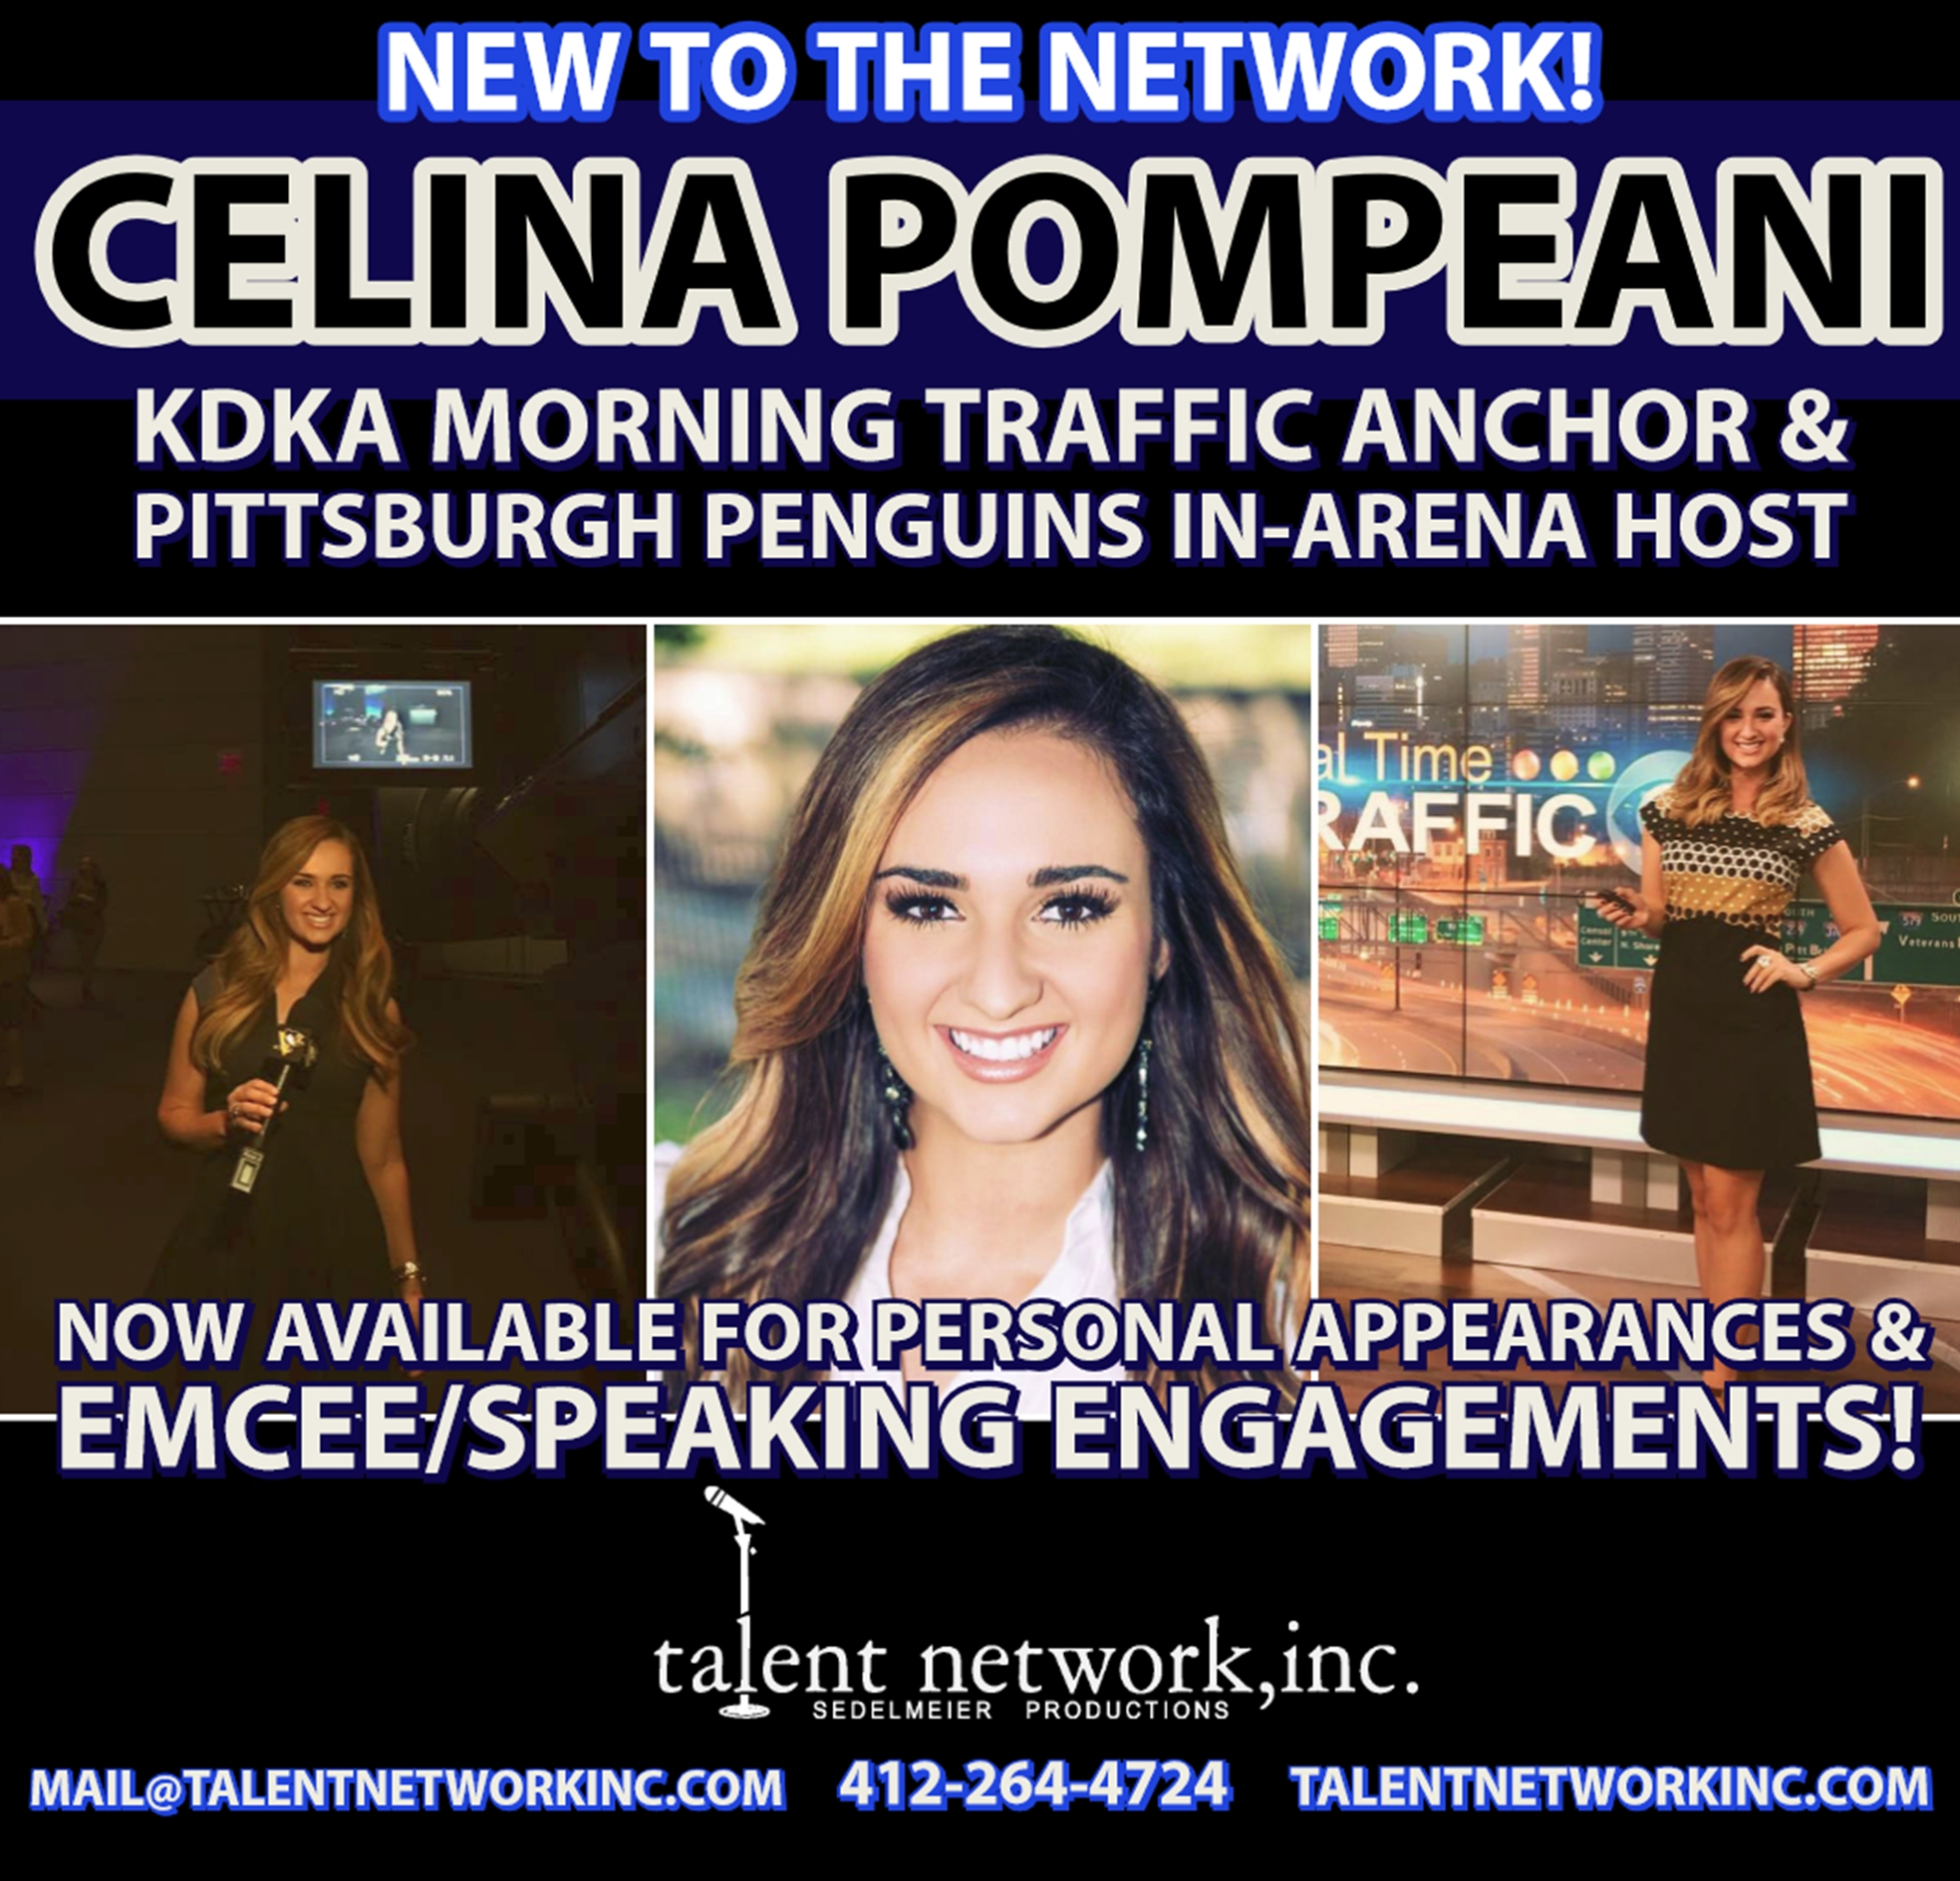 Celina Pompeani, represented by talent network, inc., booking agency, entertainment bookings